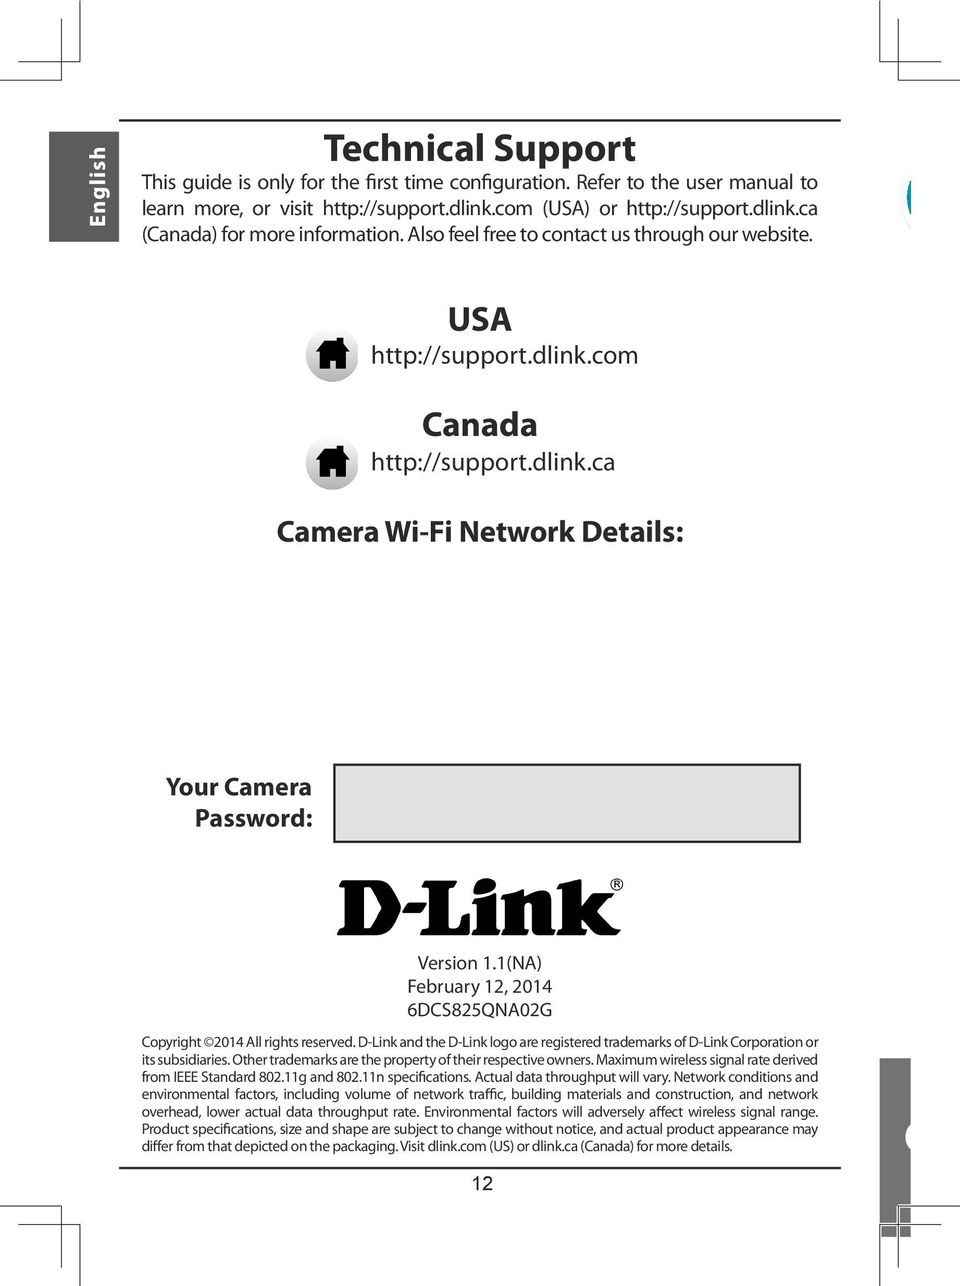 1(NA) February 12, 2014 6DCS825QNA02G Copyright 2014 All rights reserved. D-Link and the D-Link logo are registered trademarks of D-Link Corporation or its subsidiaries.